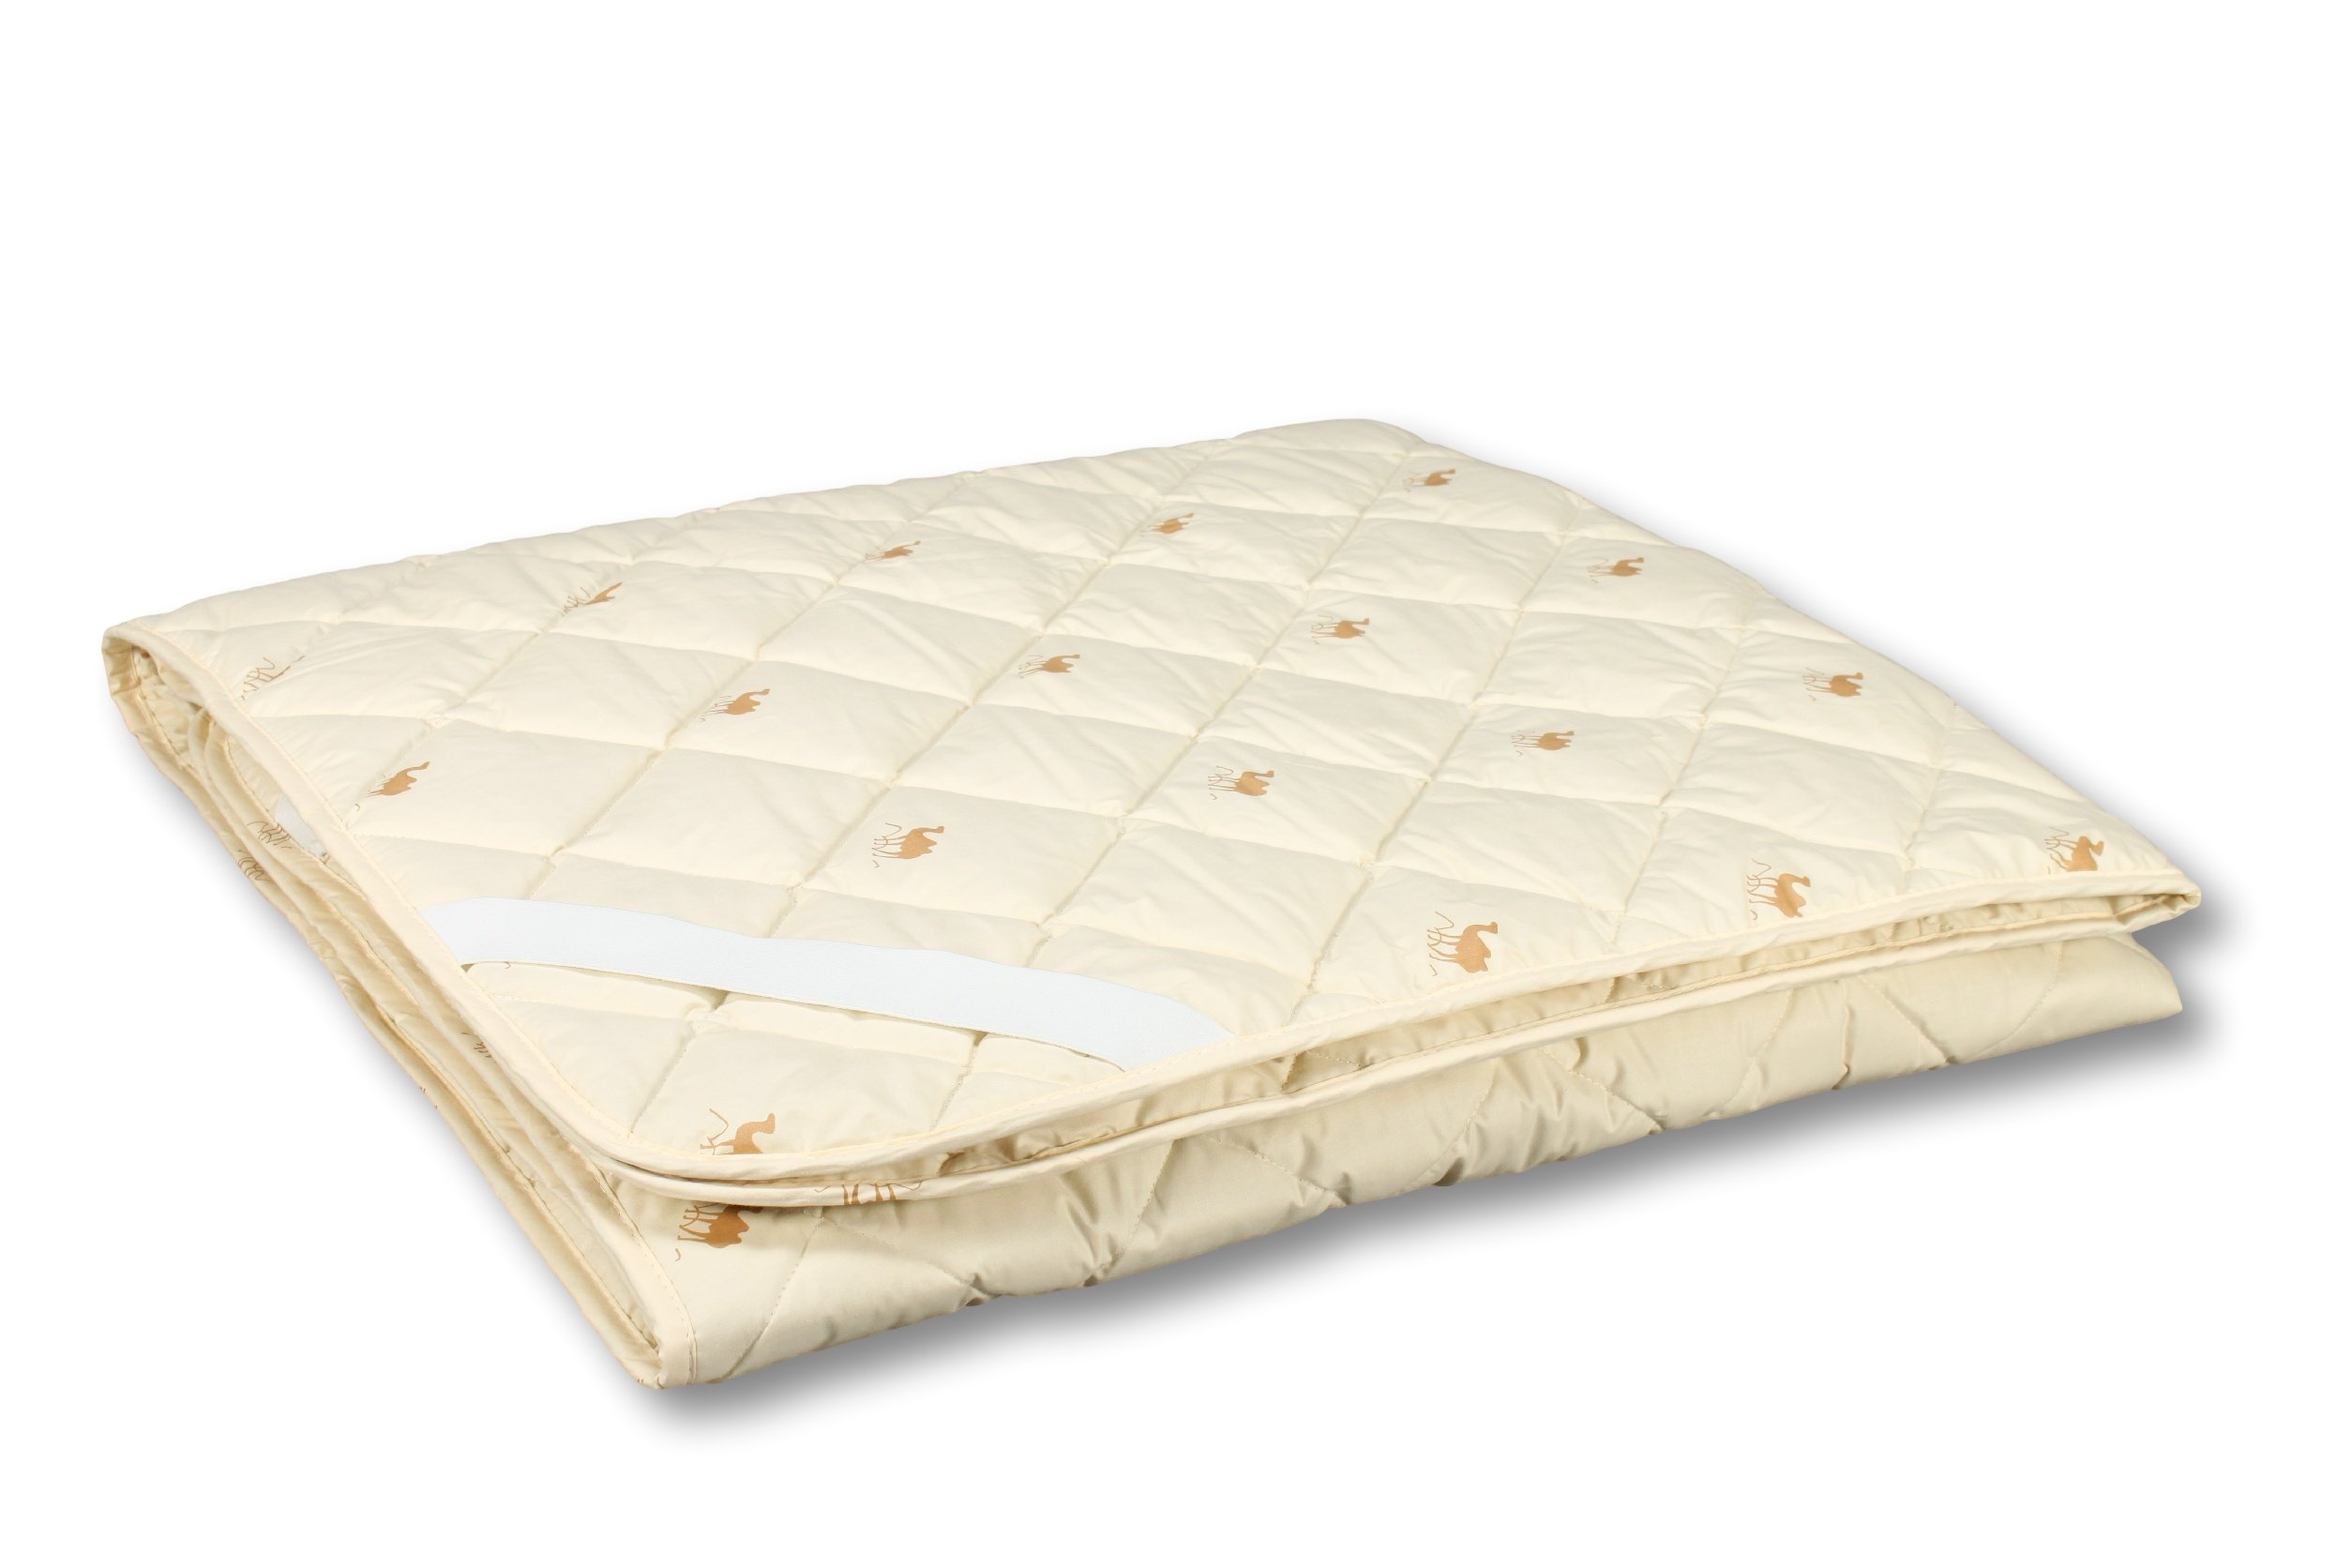 SAHARA Quilted Bed Mattress Topper/Protector with Bands (Camel Wool Filler) (Queen/King 79''x87'')